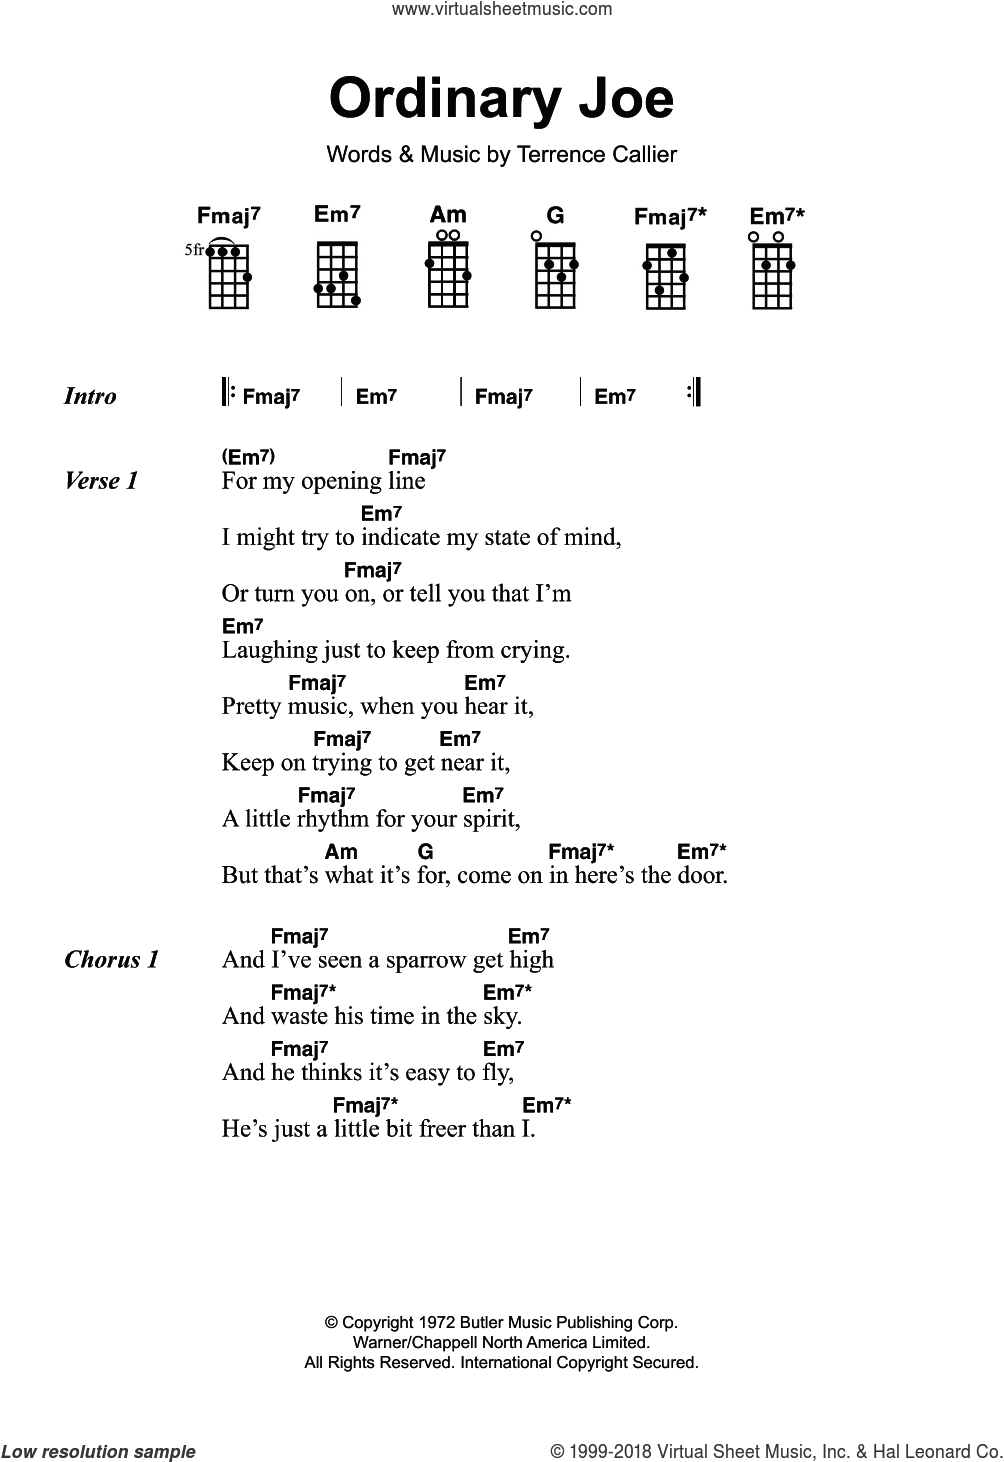 Ordinary Joe sheet music for ukulele by Terry Callier and Terrence Callier, intermediate skill level